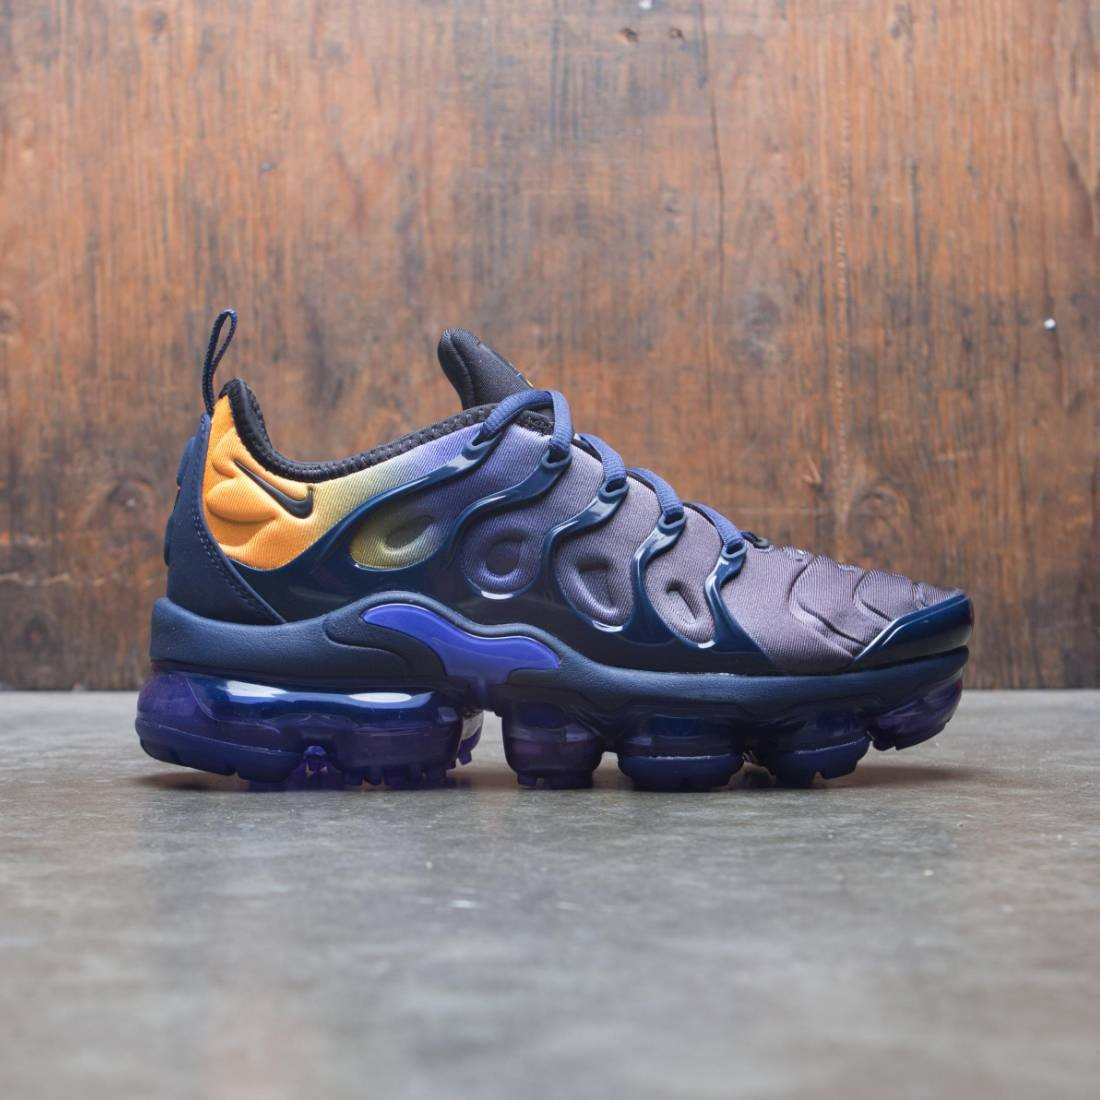 buy popular 5243d e1e20 Nike Women Air Vapormax Plus (persian violet / black-midnight navy)